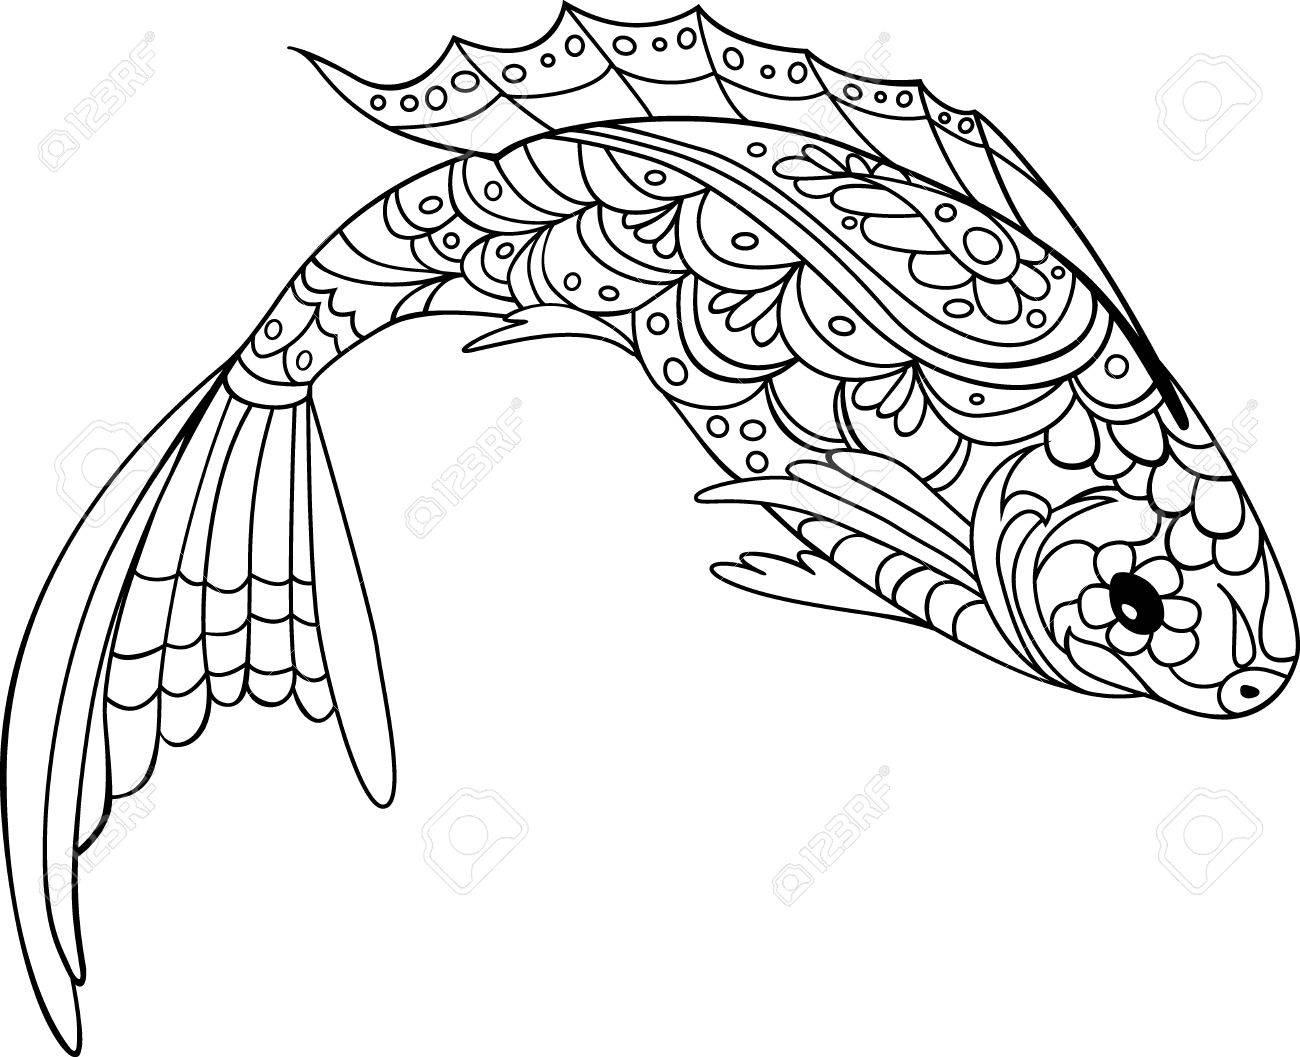 fish zentangle style. Coloring book for adult and kids, antistress..